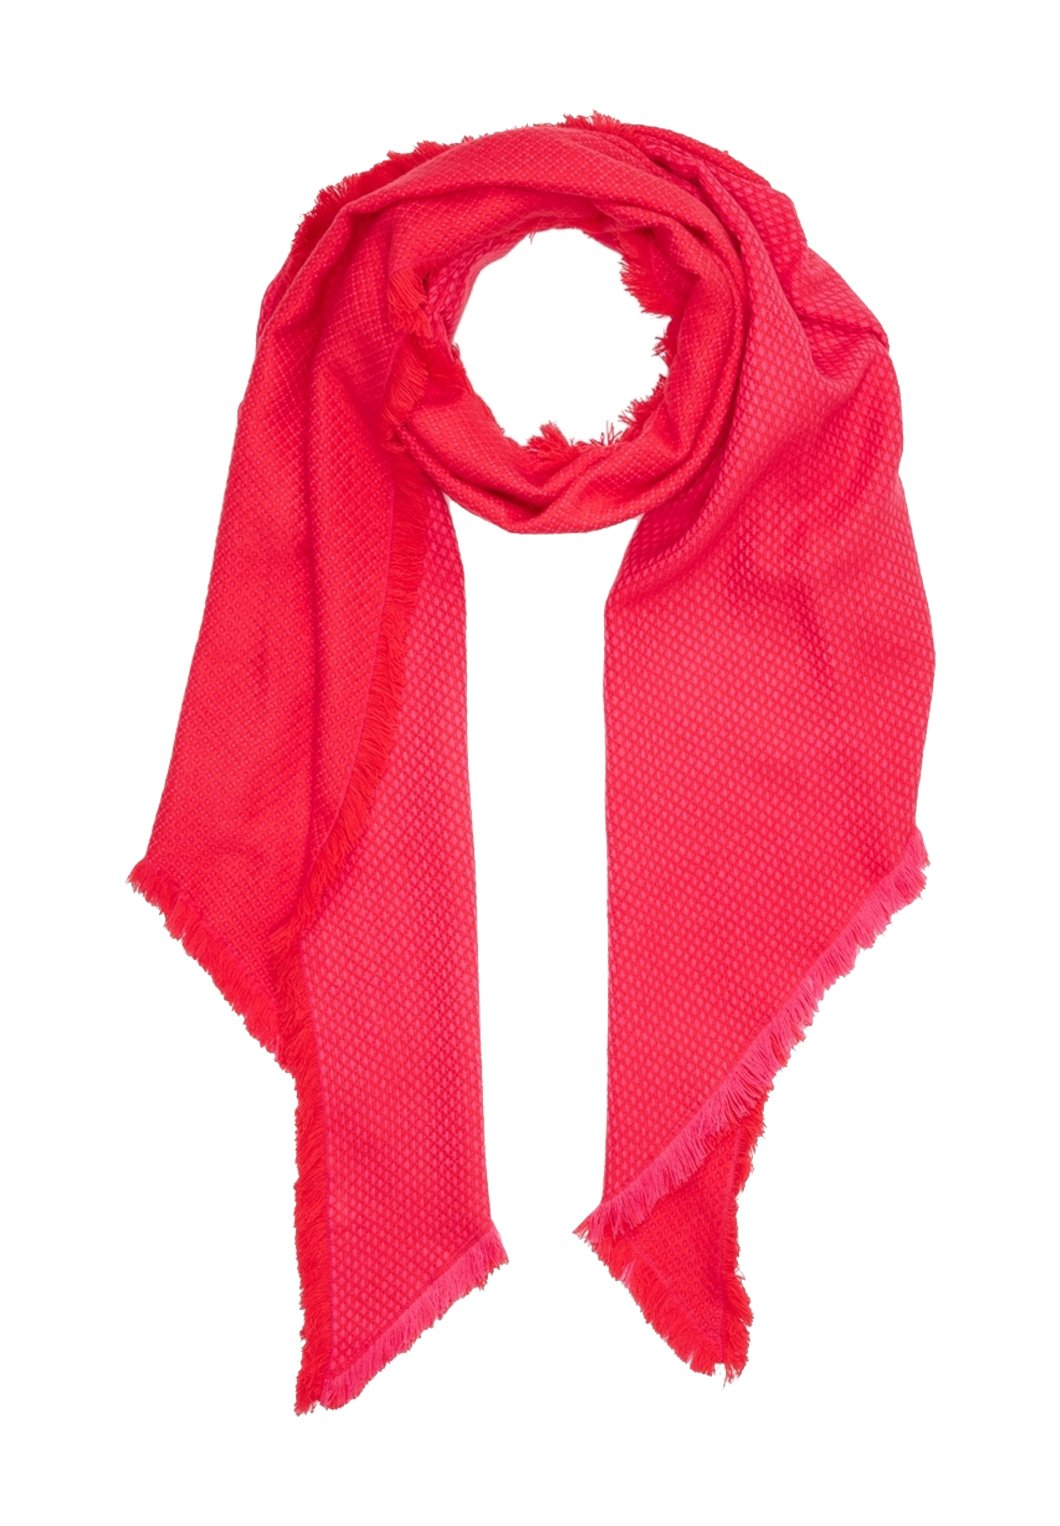 S.oliver Mit Jacquard-muster - Schal Red/rot